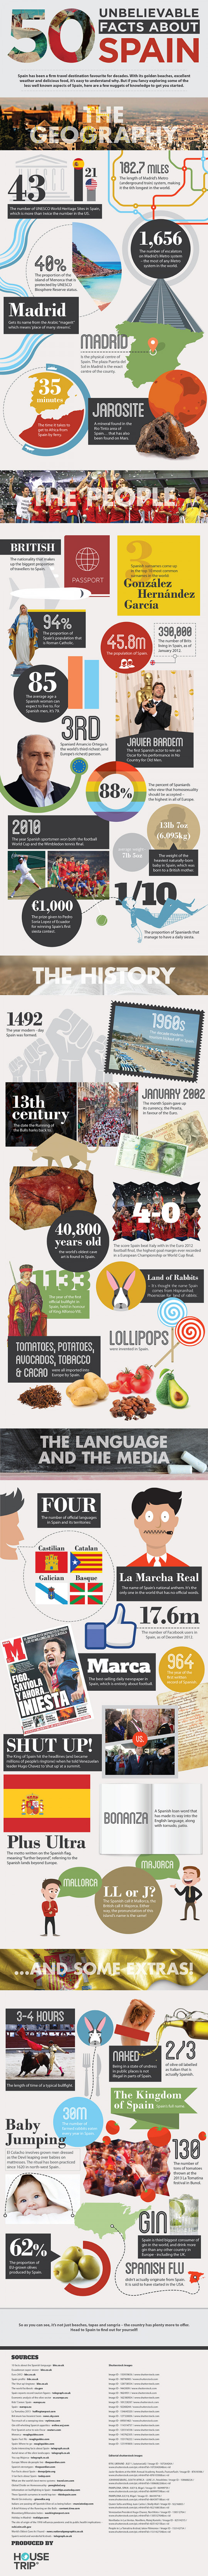 50 Facts About Spain